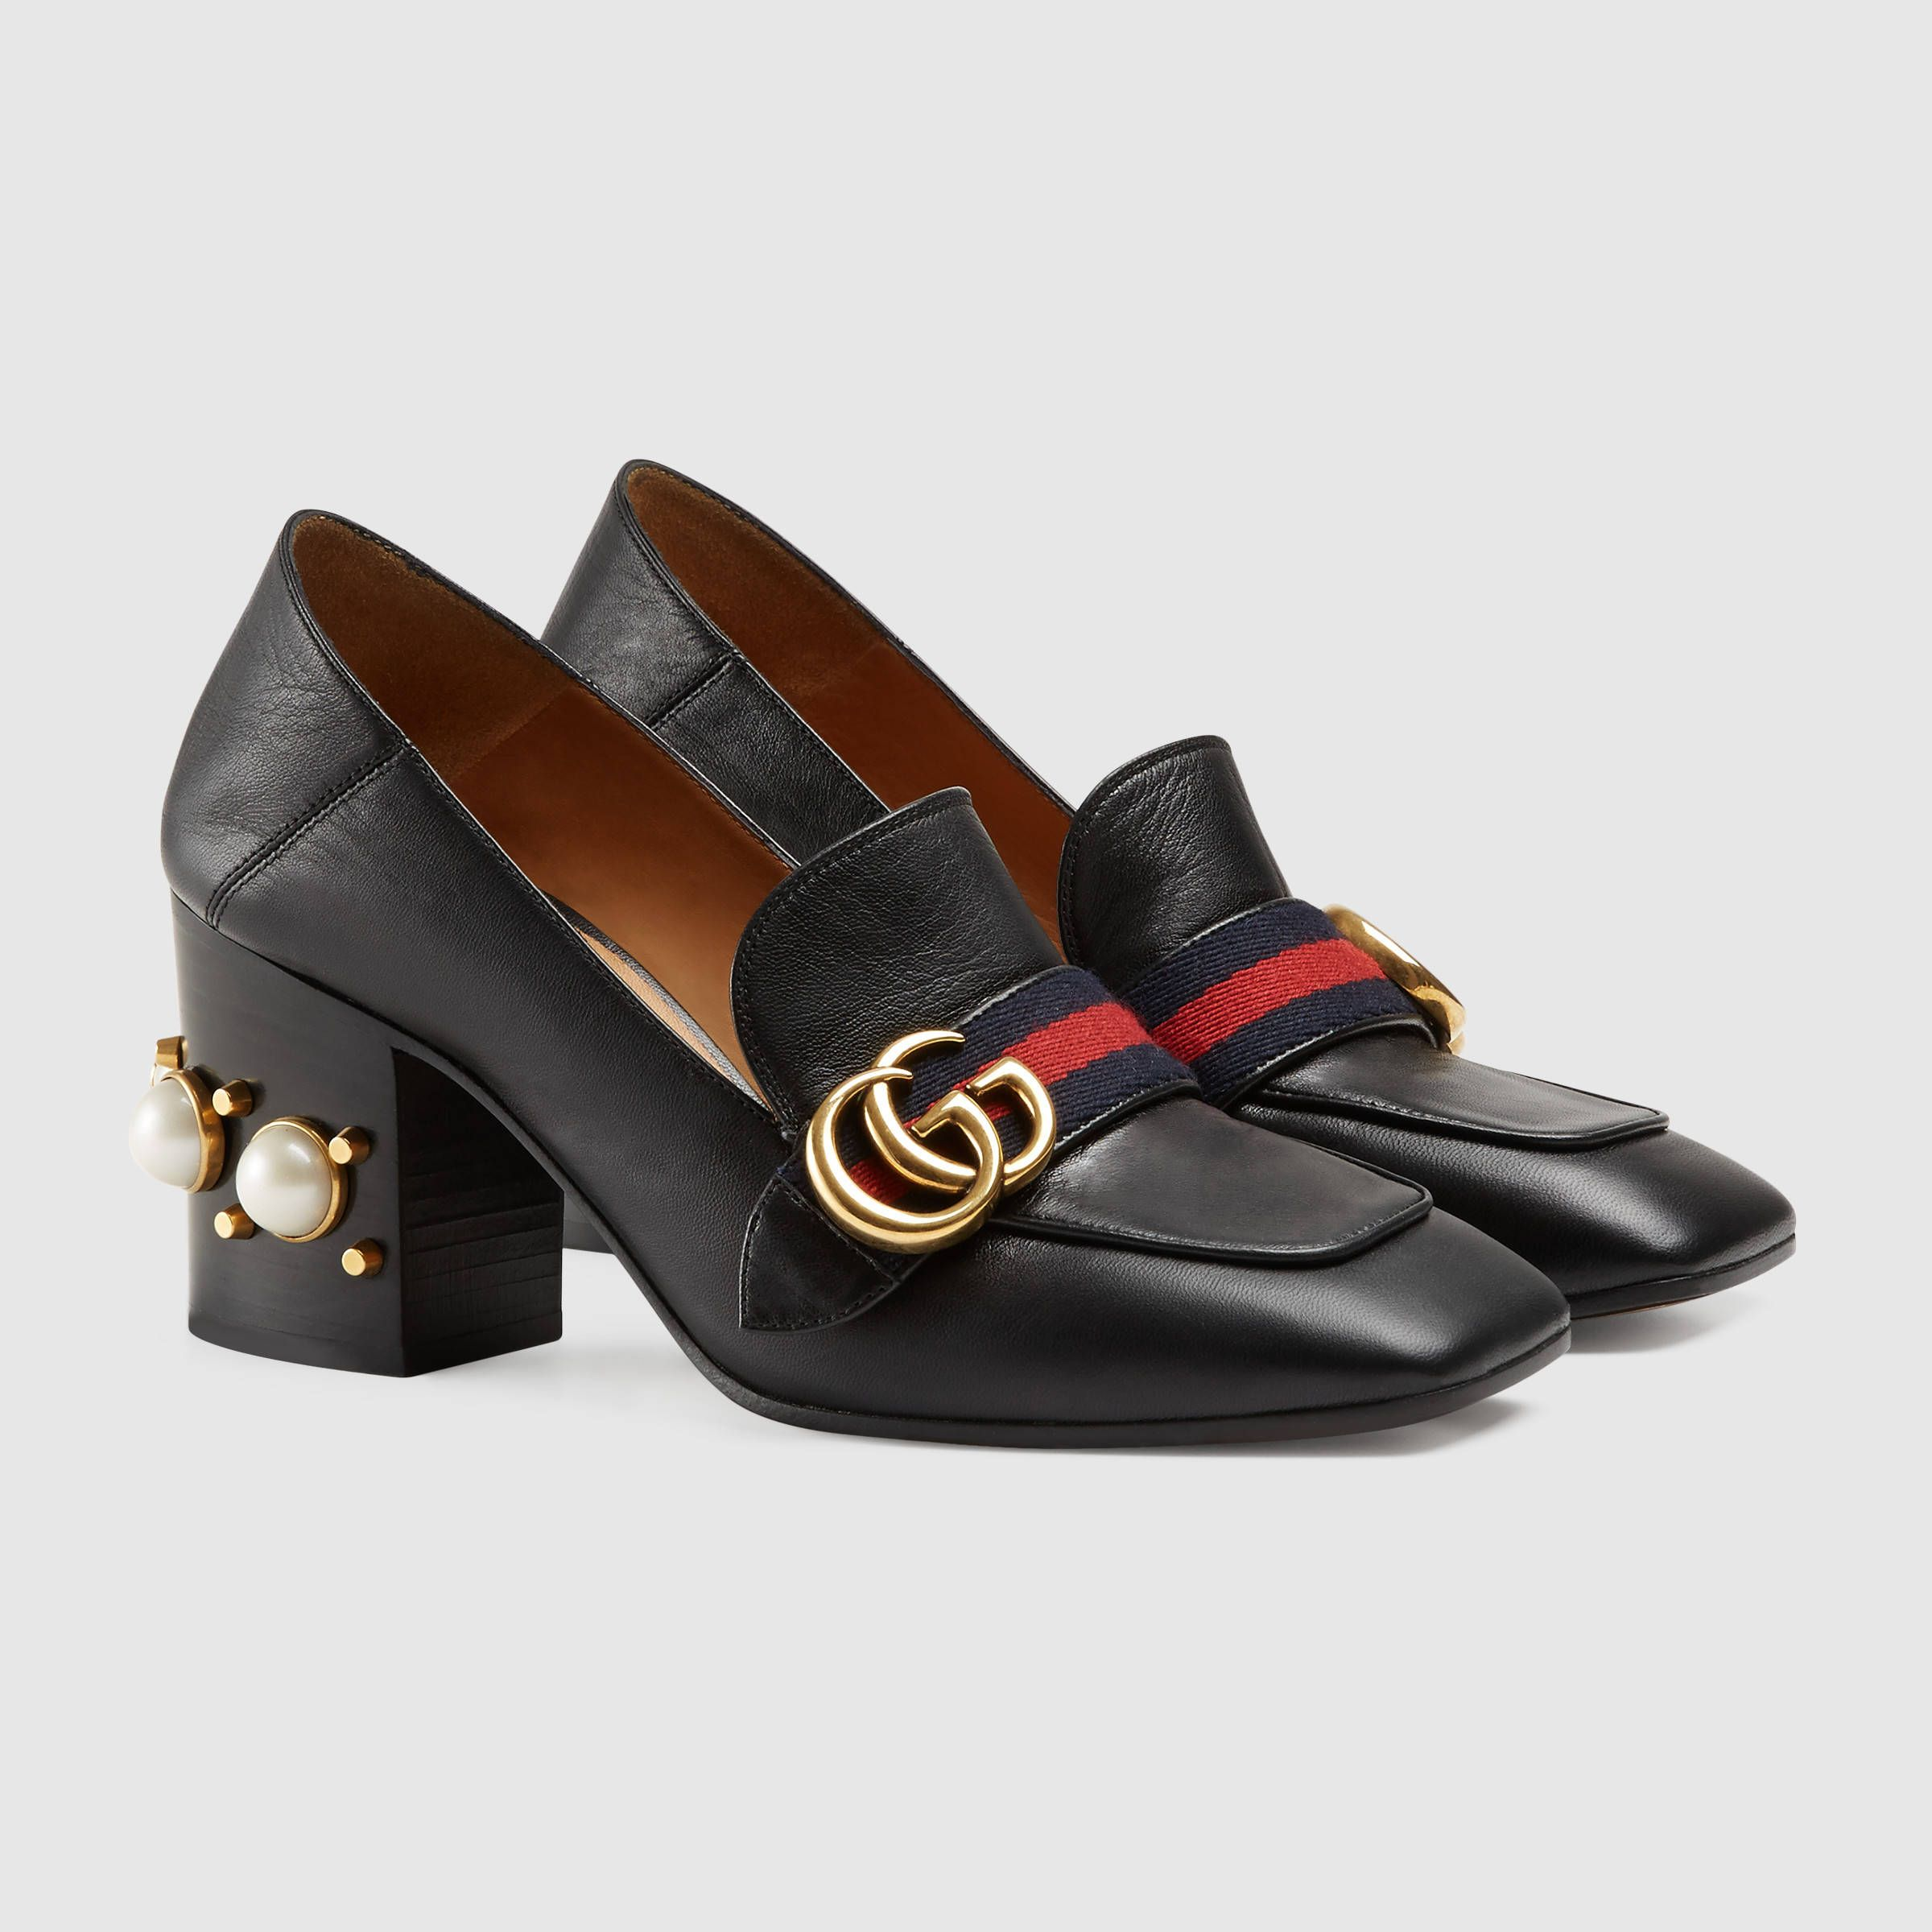 4216651bd Gucci Women - Leather Black Mid-Heel Loafers - (Also available in Red &